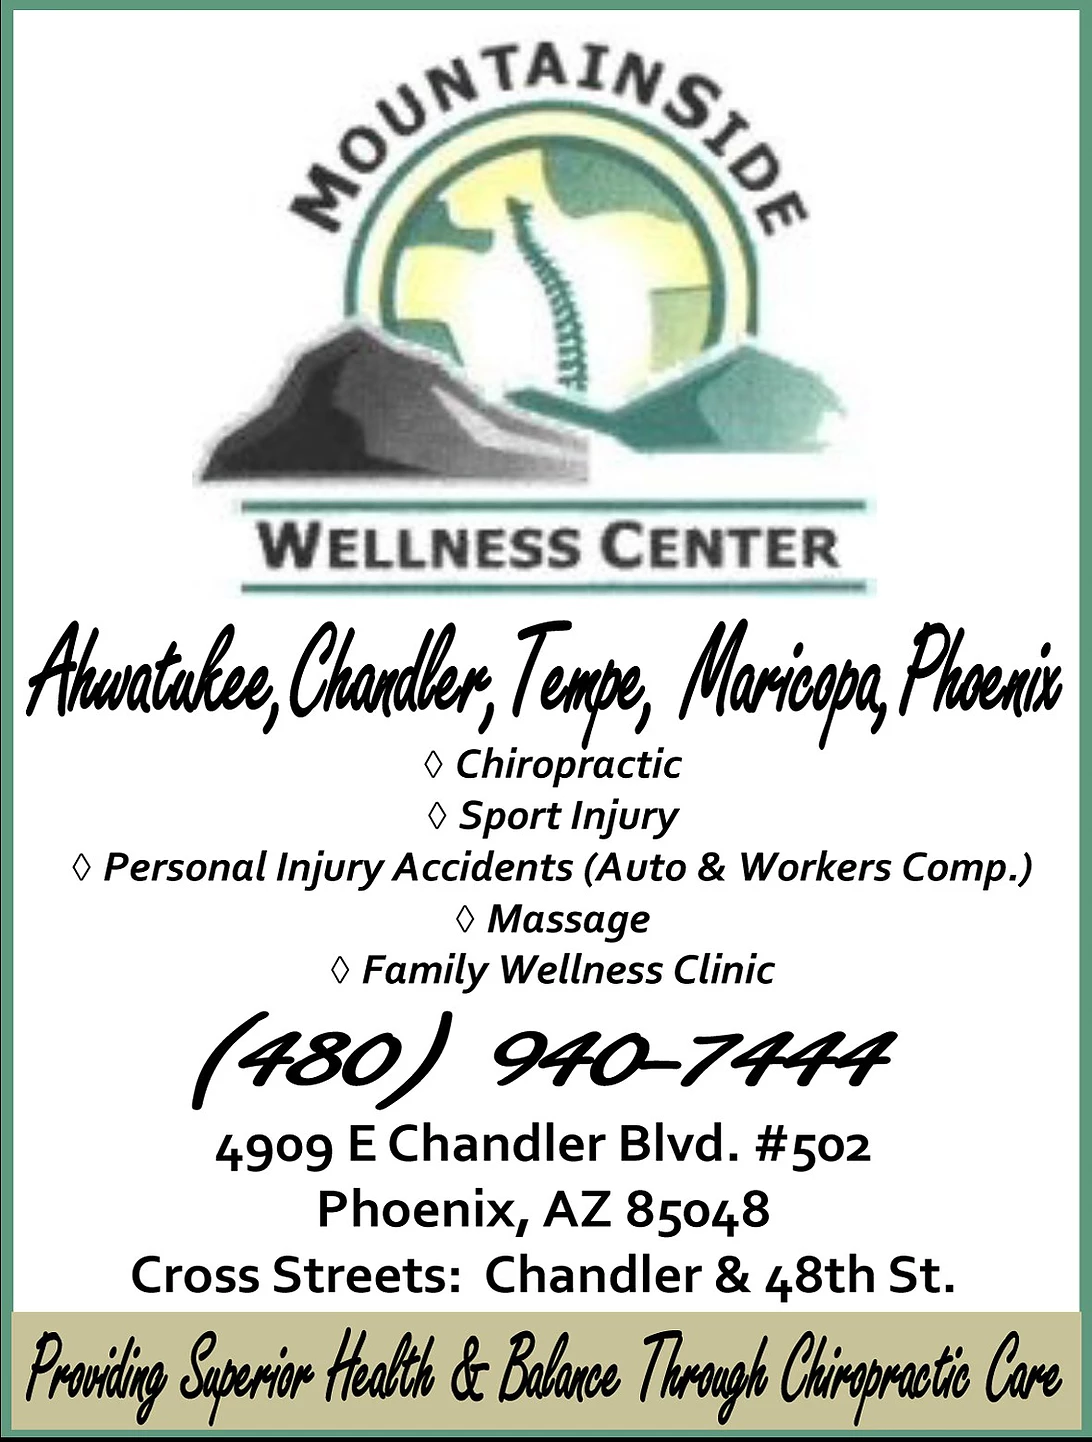 Mountainside Wellness Center